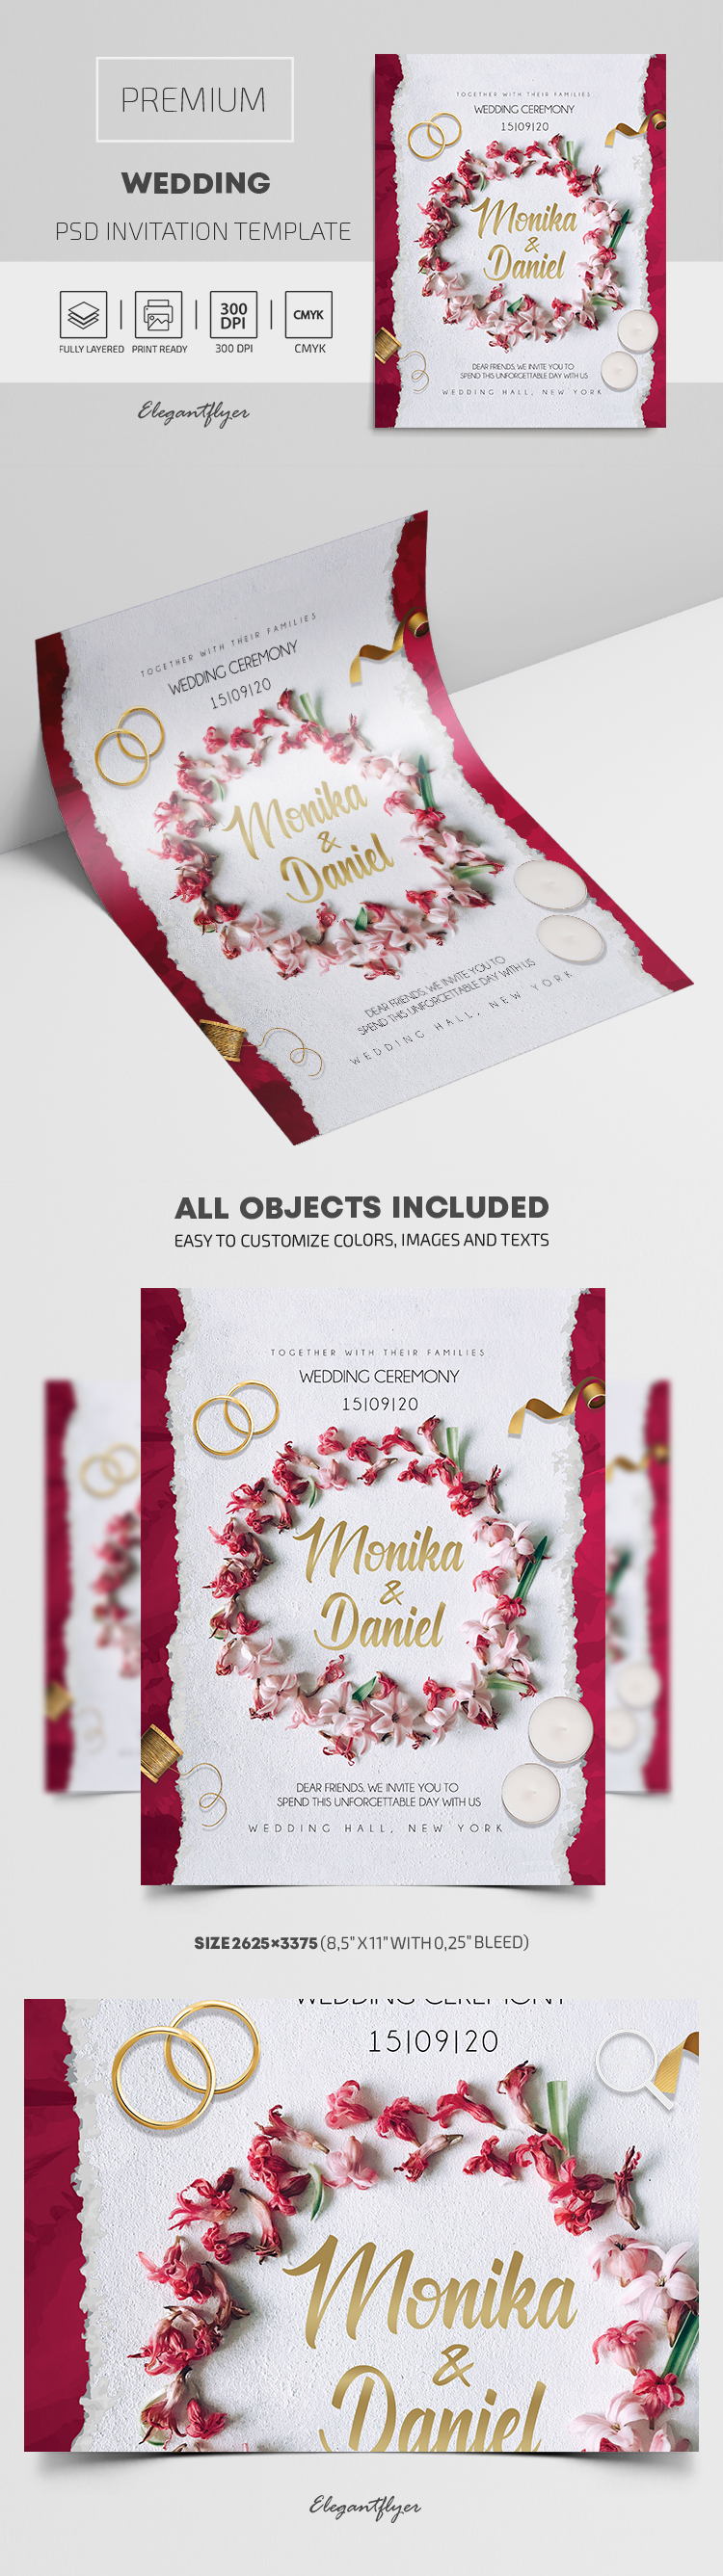 Premium Wedding Invitation Template in PSD